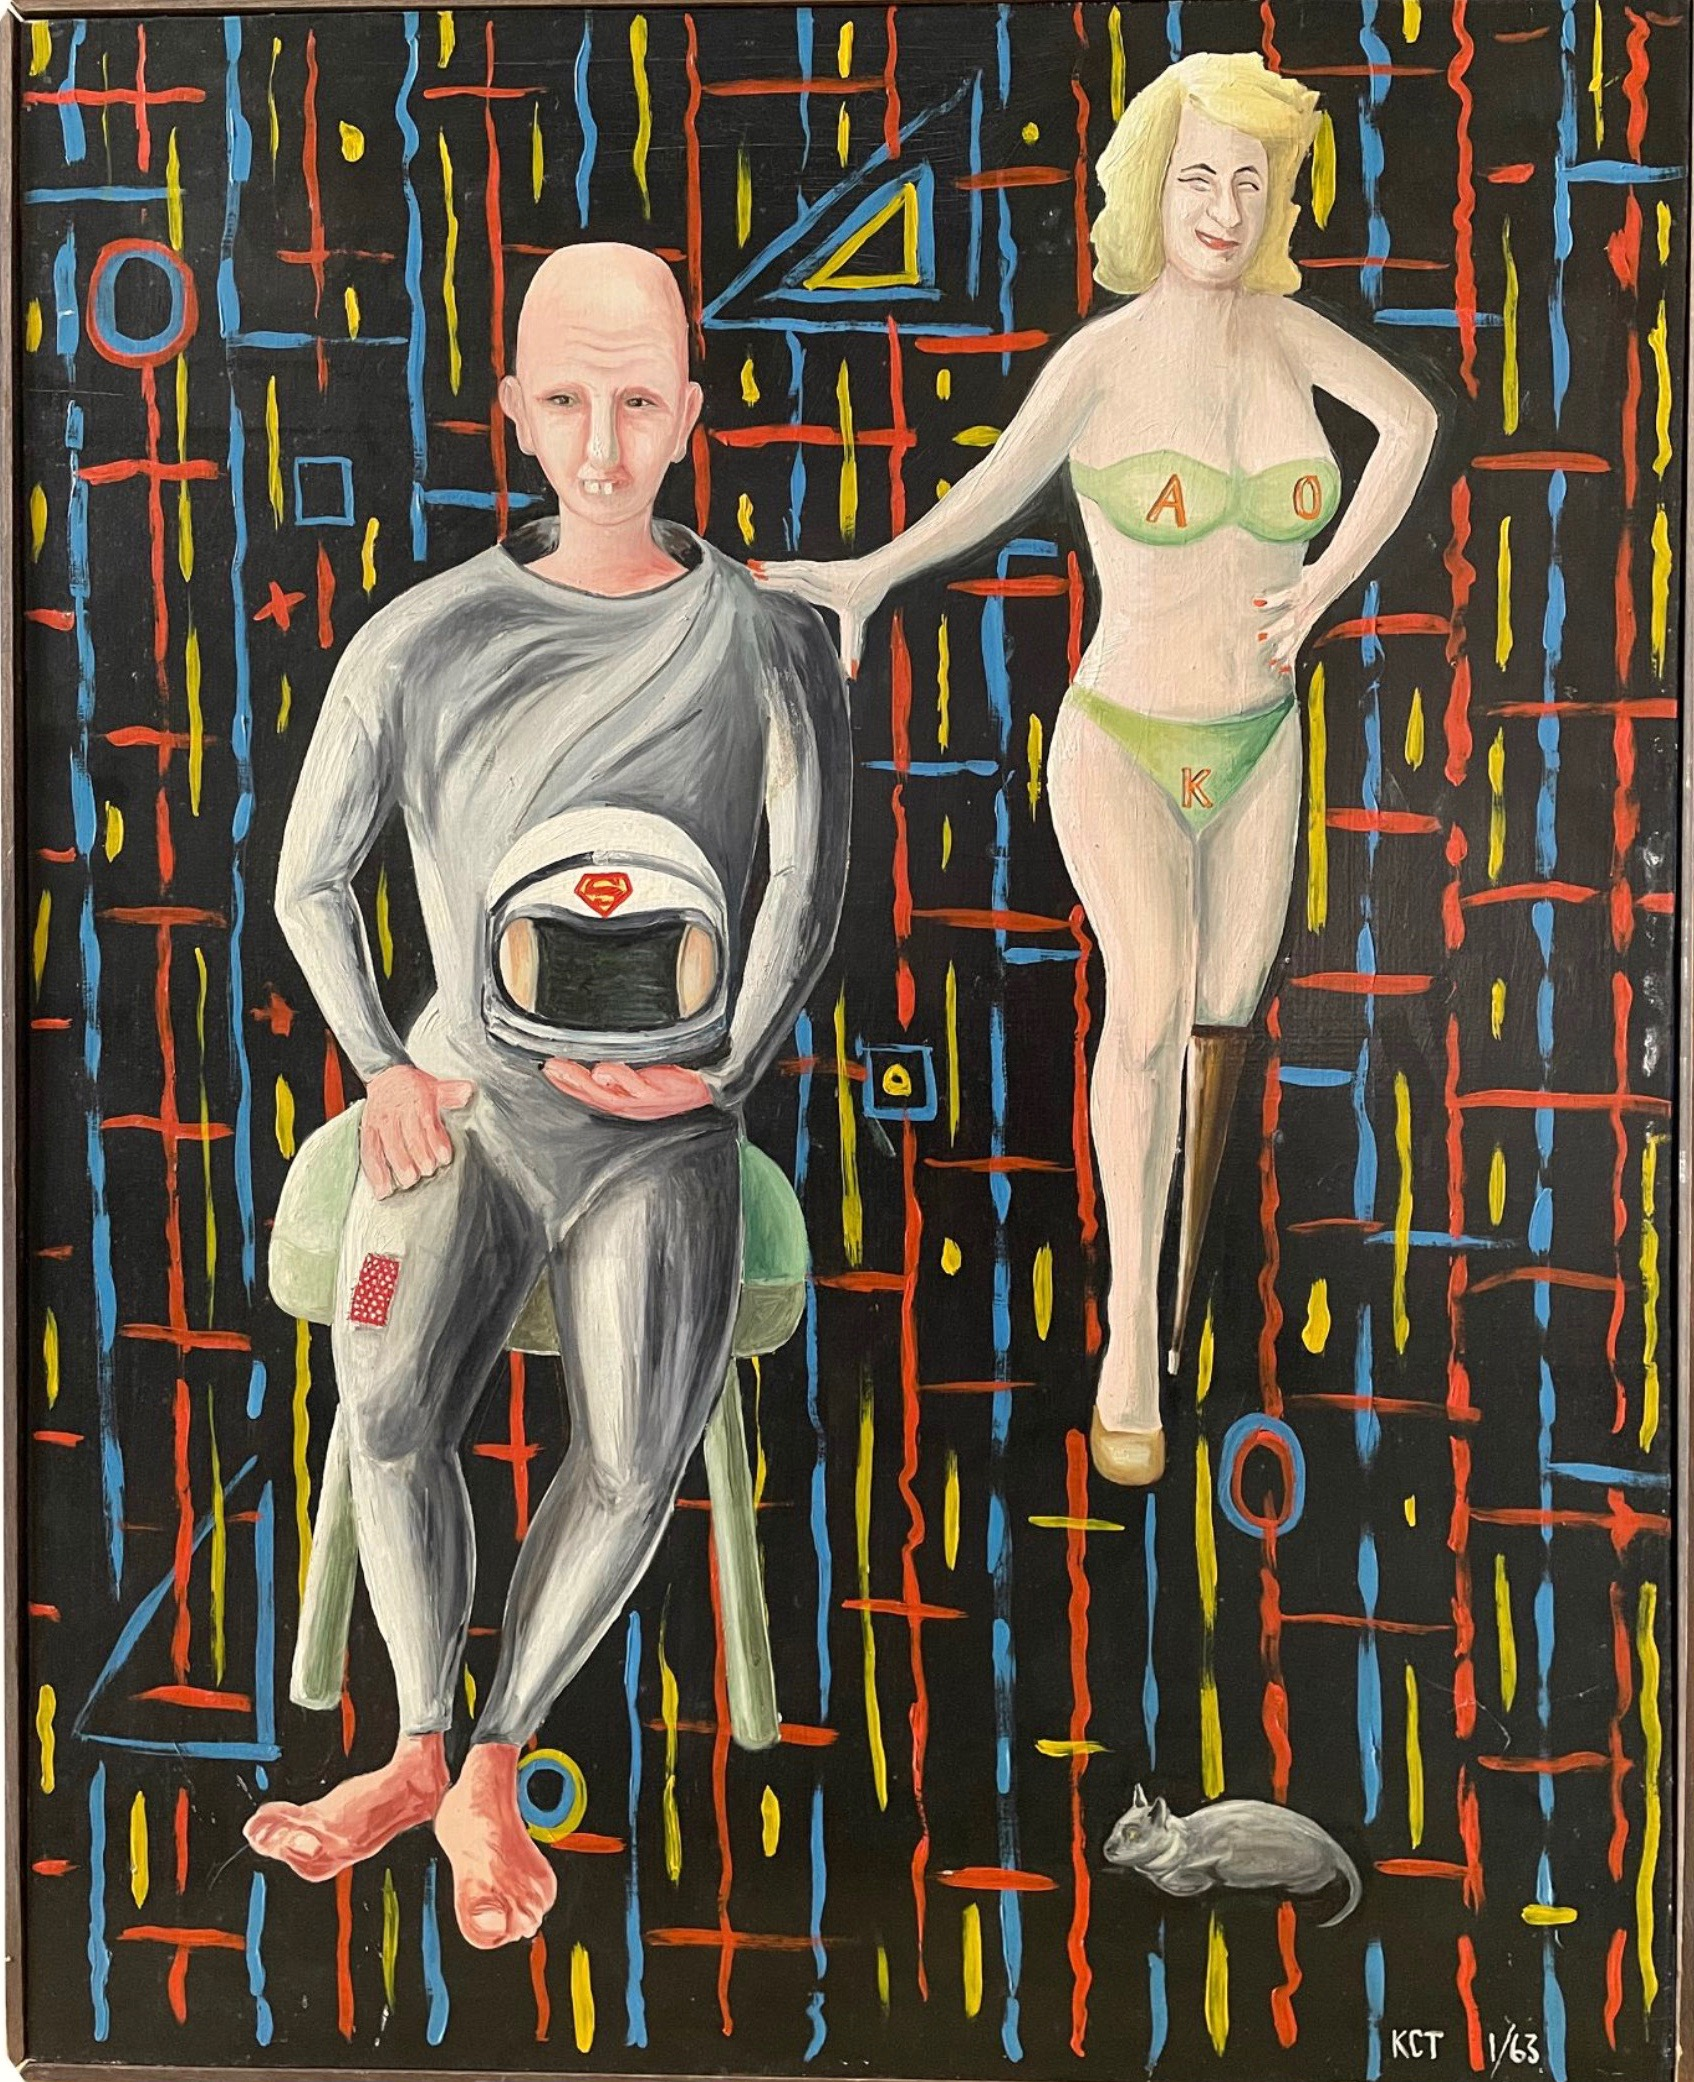 'Is Your Spacecraft Ebbing or Burning Oil?' This painting, by William Truschel, is one of 75 artworks in the Double Dog show.